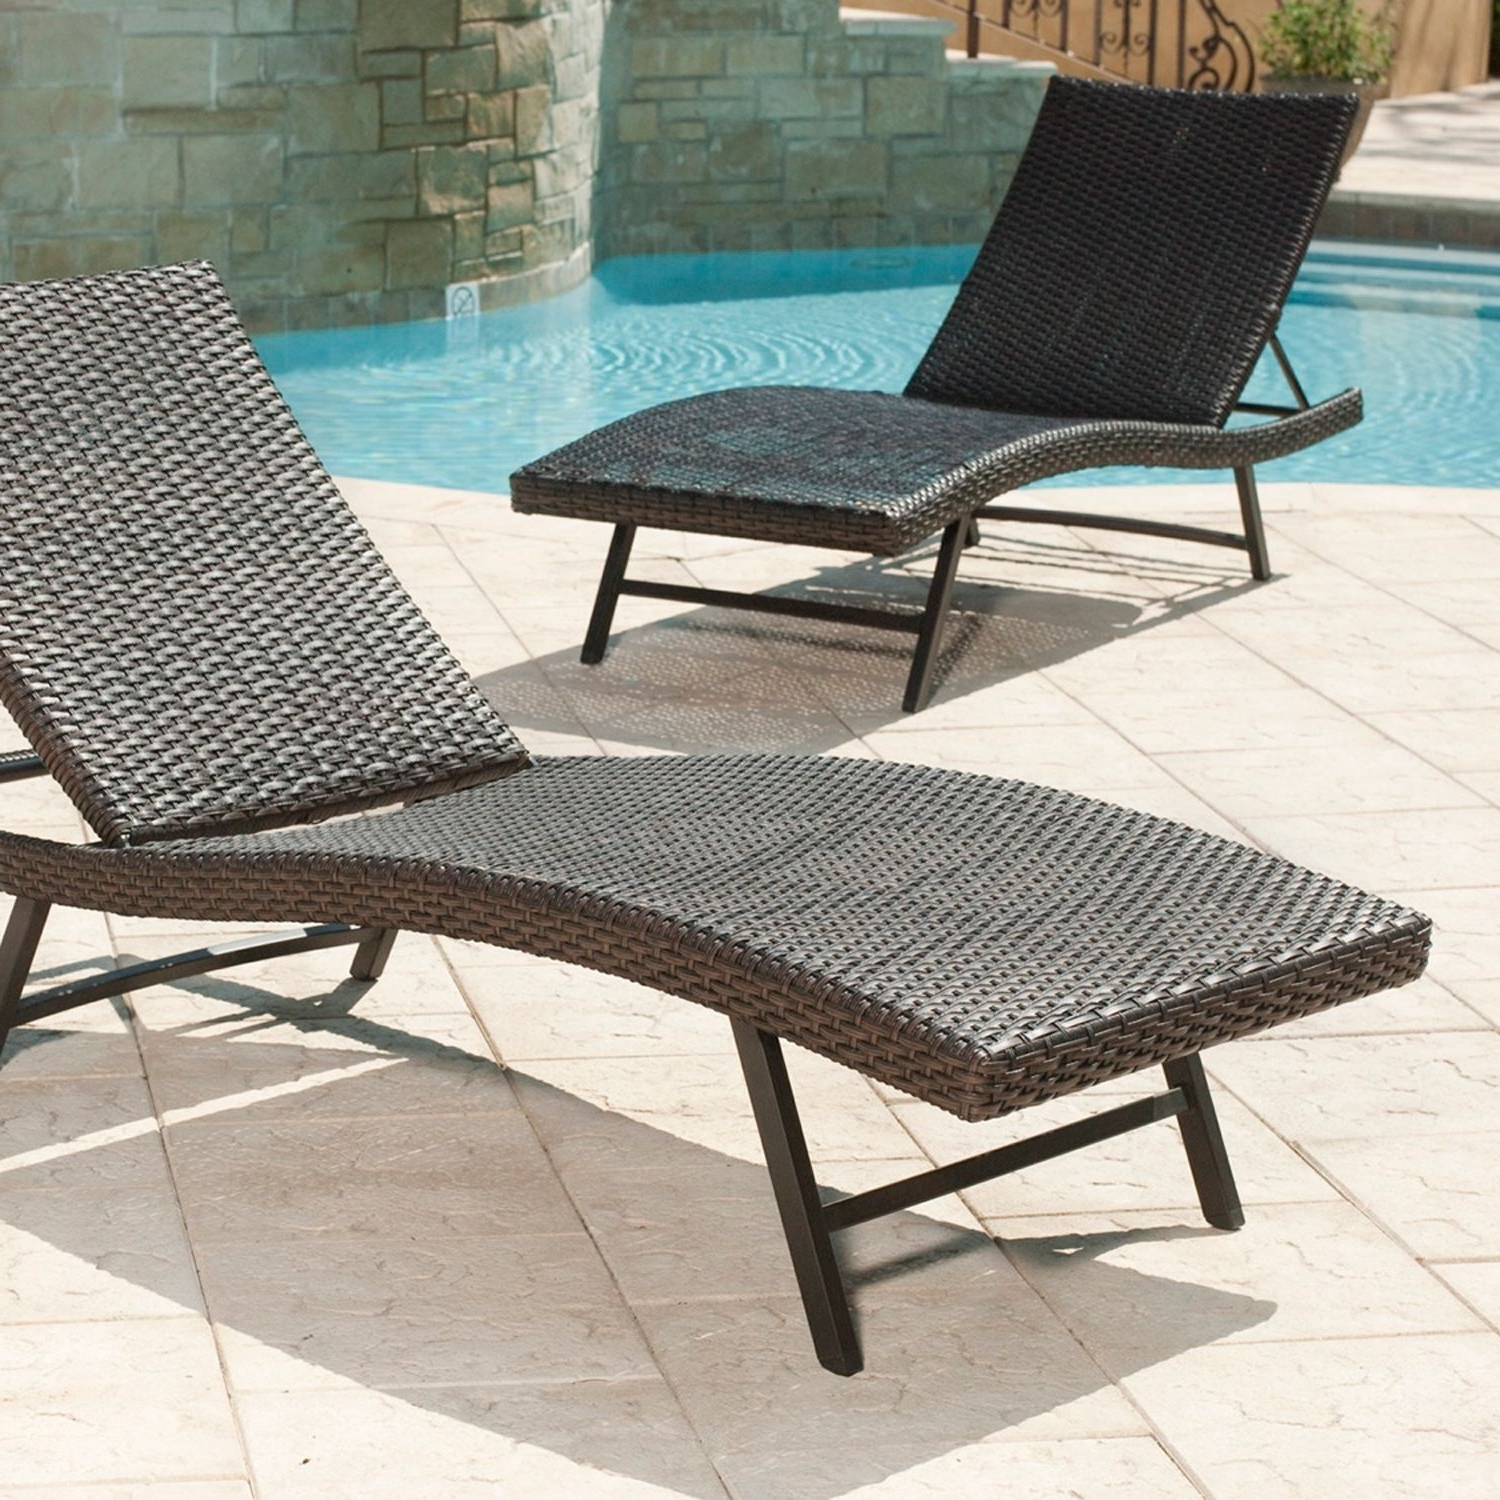 Chaise Lounge Chairs For Poolside With Preferred Lounge Chair : Furniture Outdoor Double Chaise Outdoor Pool Chaise (View 3 of 15)